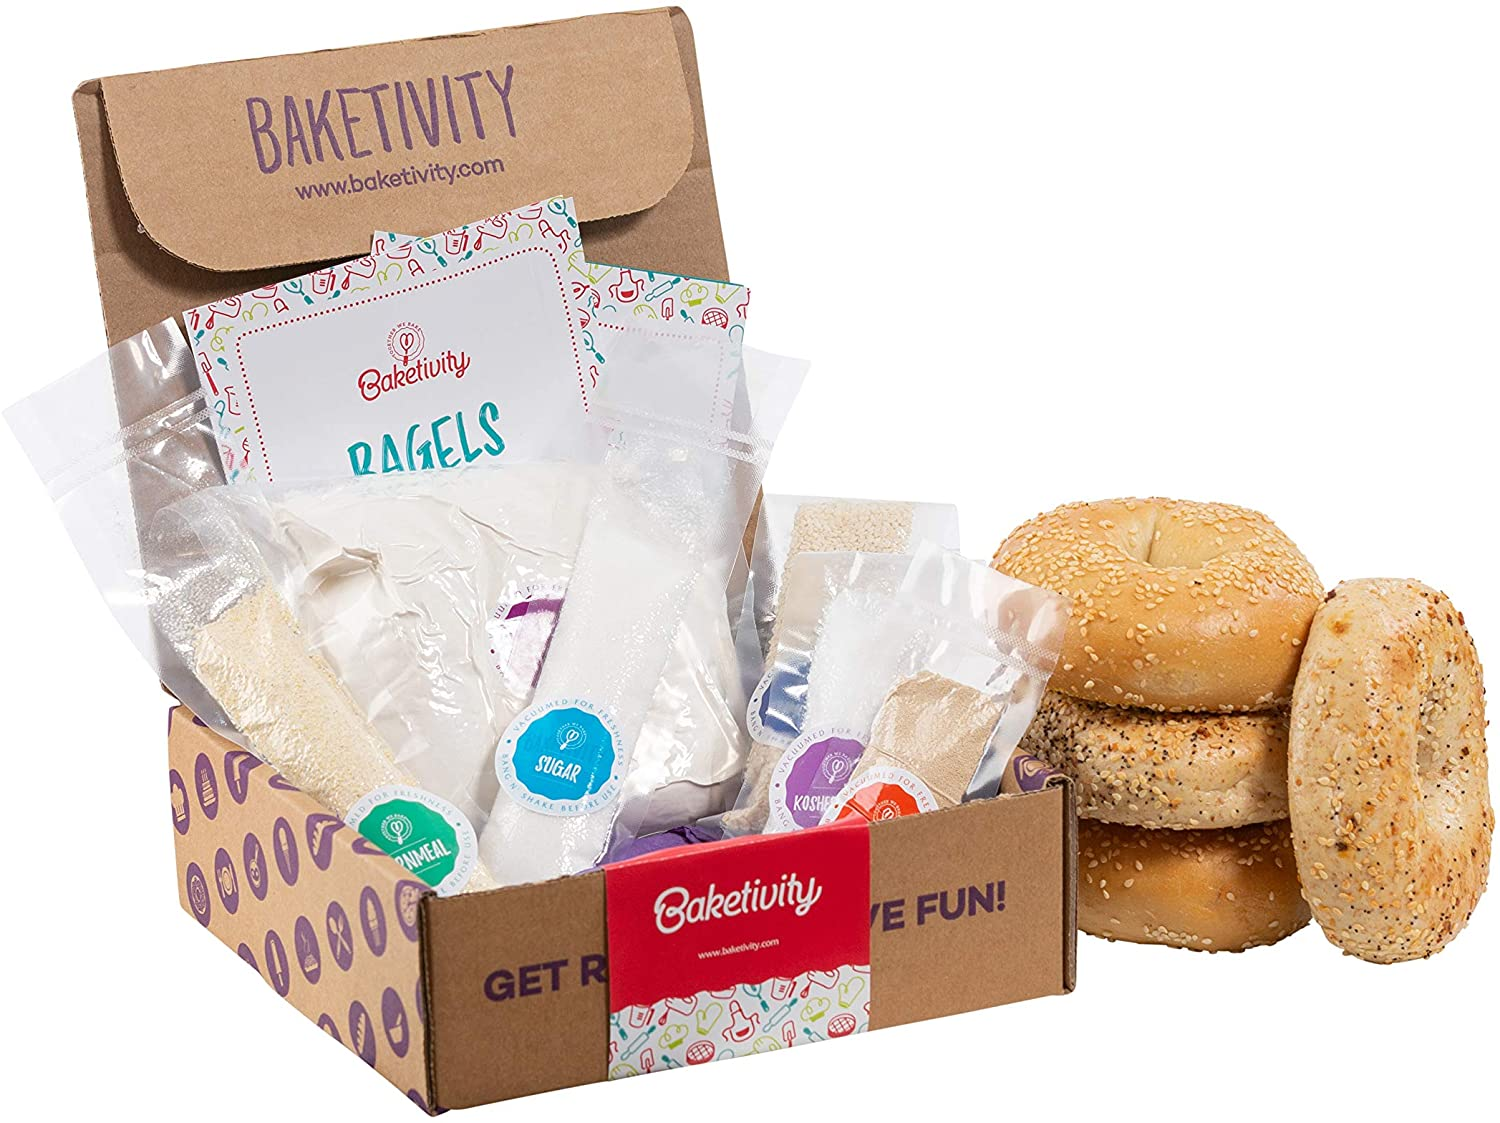 Baketivity kit with baking supplies measured out in bags and baked bagels on the side